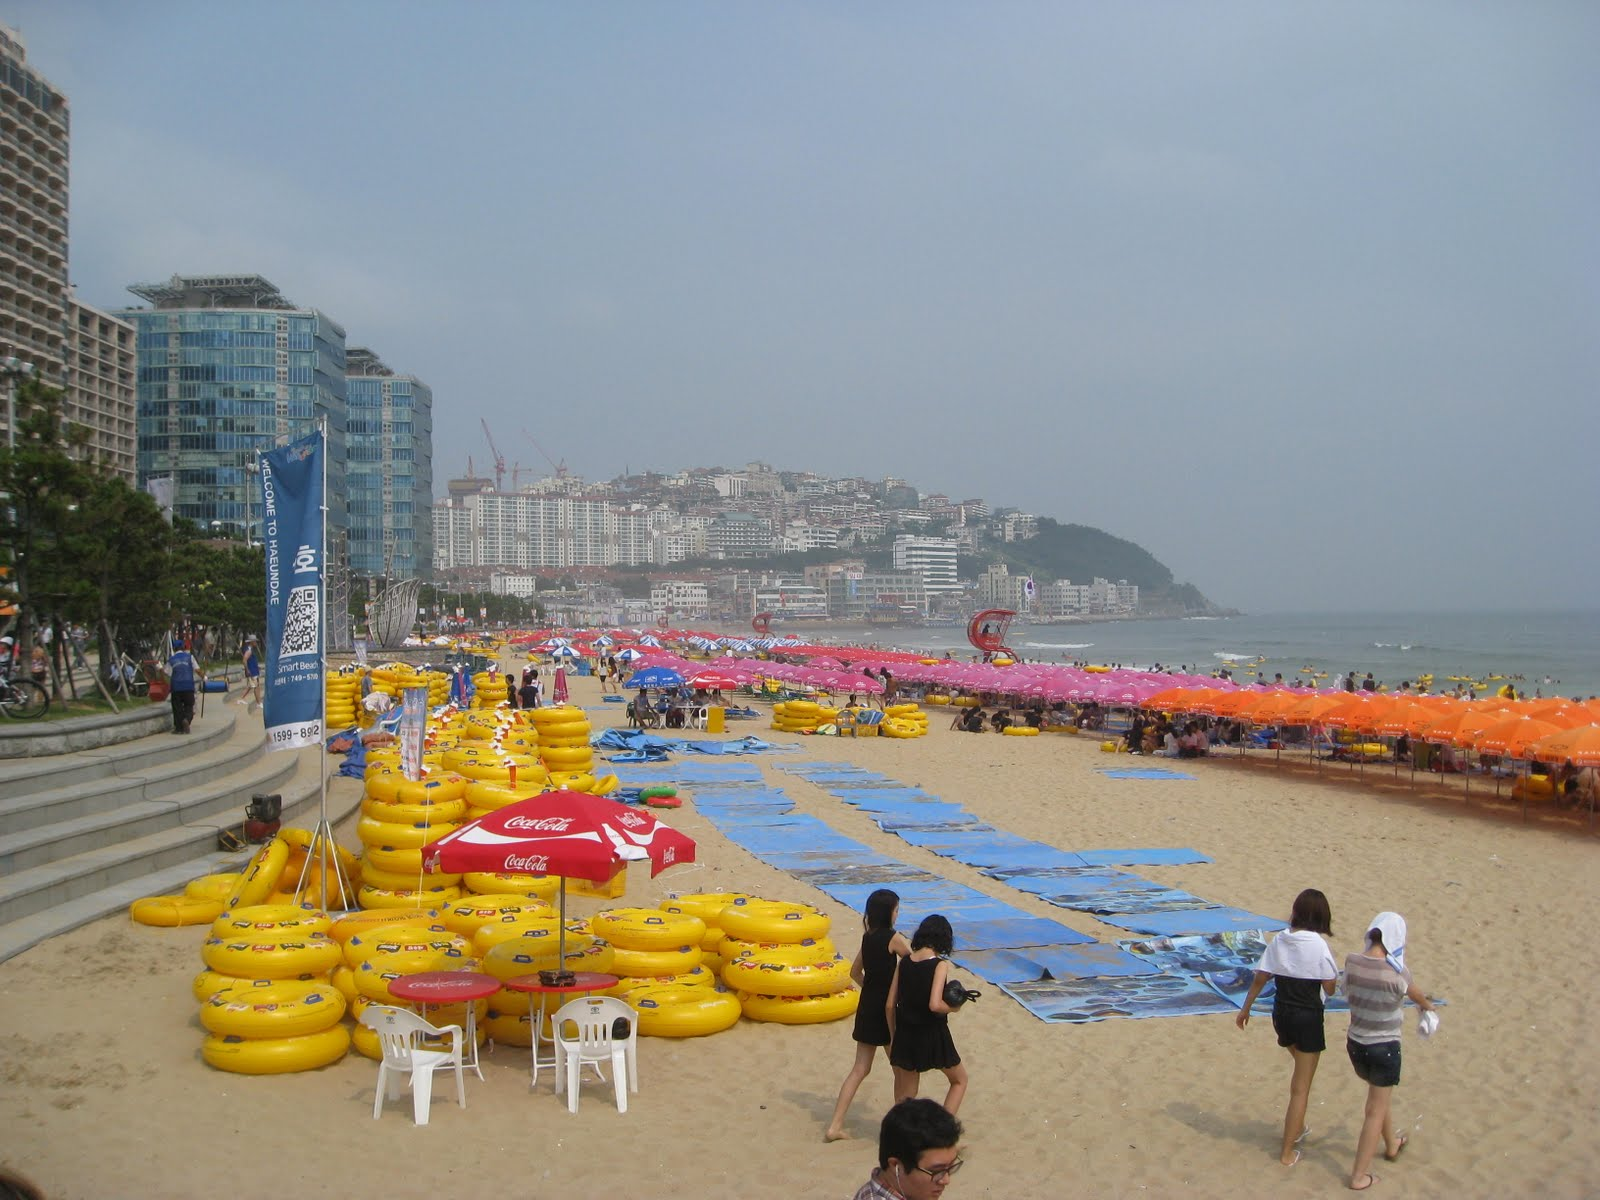 Busan South Korea  city pictures gallery : busan south korea busan south korea busan south korea busan south